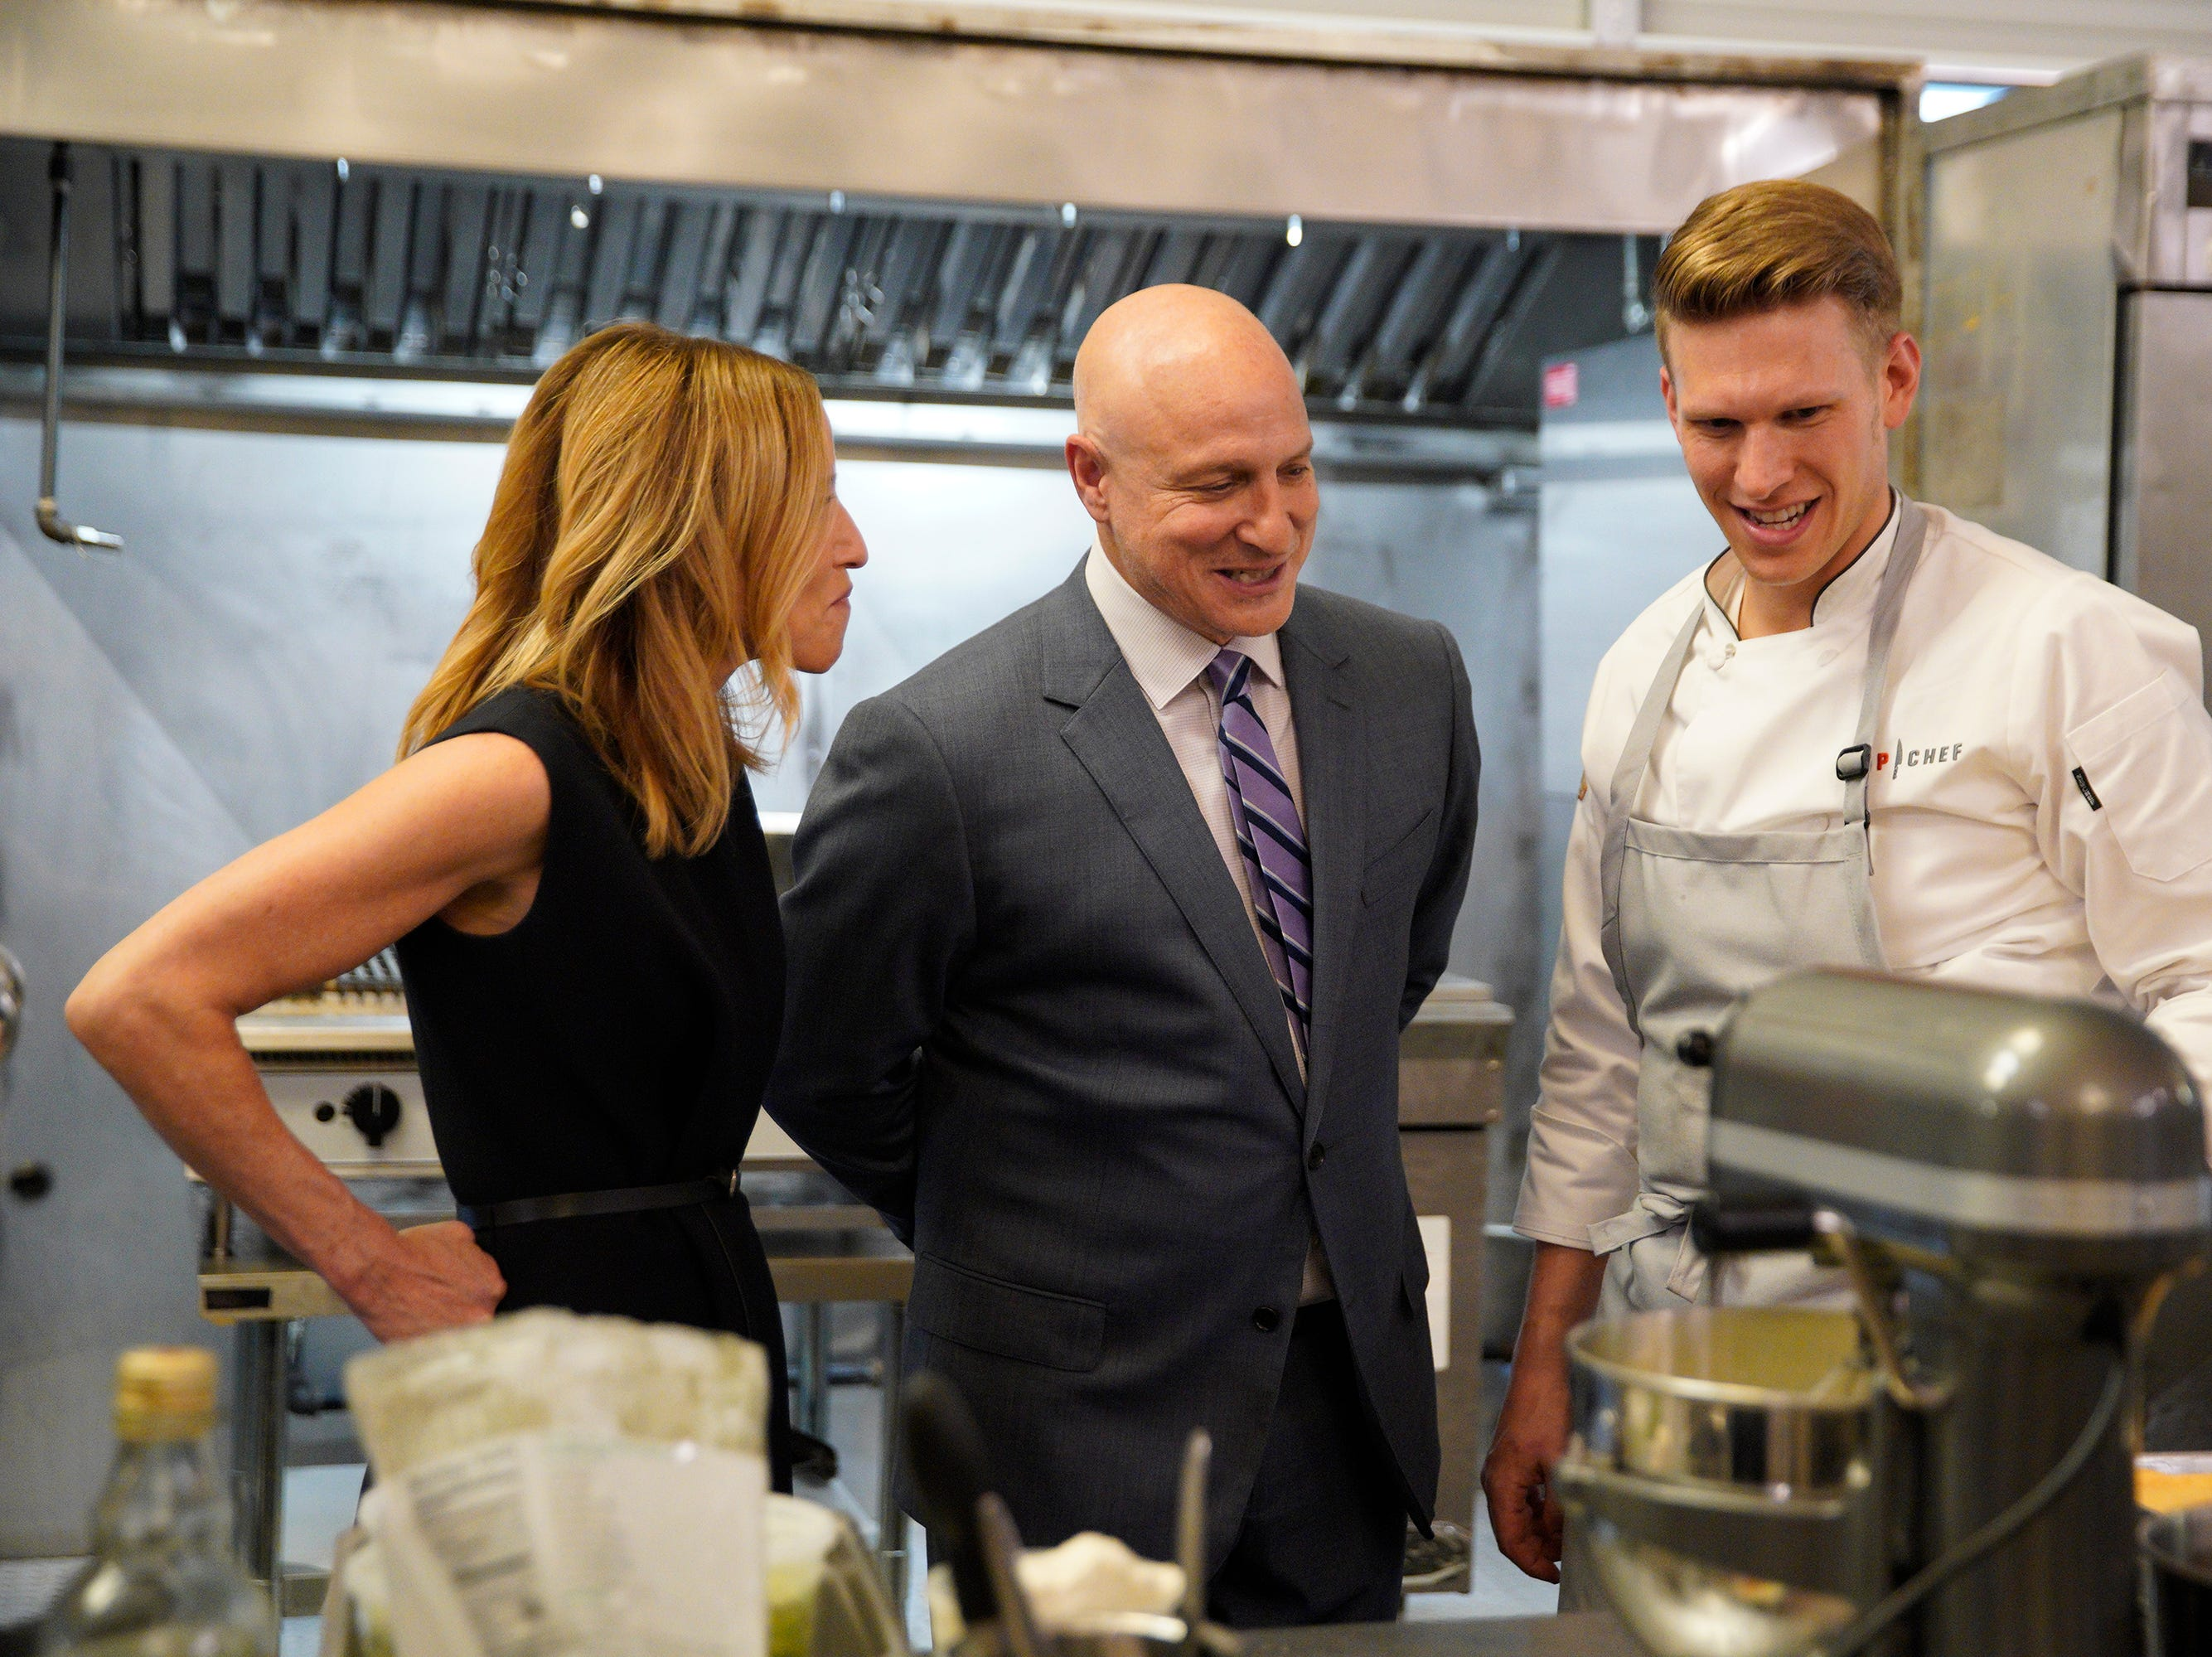 """(From left to right): Caroline Styne, Tom Colicchio and contestant Brandon Rosen on episode 5 of Bravo's """"Top Chef"""" Kentucky."""